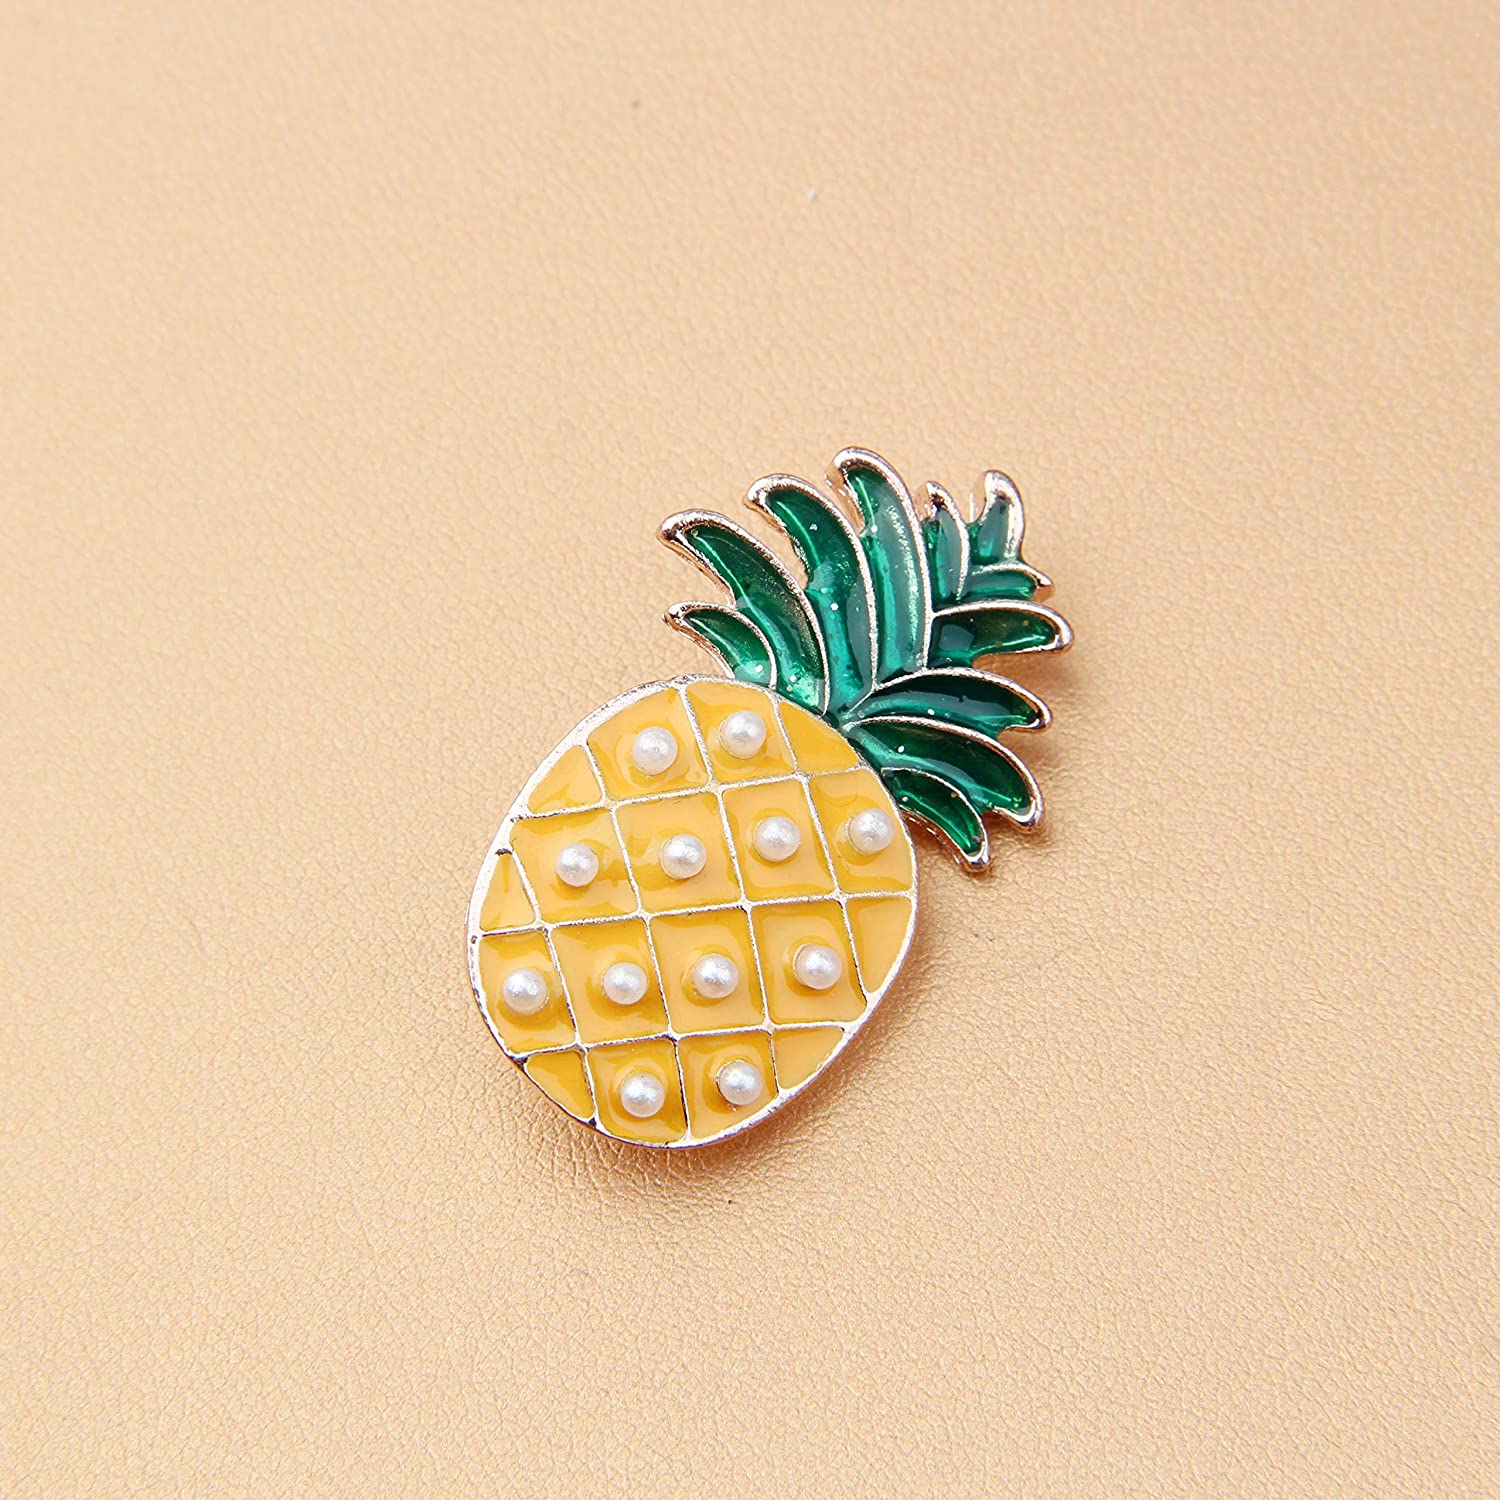 CHOROY Pineapple Pin Fruit Jewelry Gold Pineapple Brooch Tropical Jewelry Gift for Her